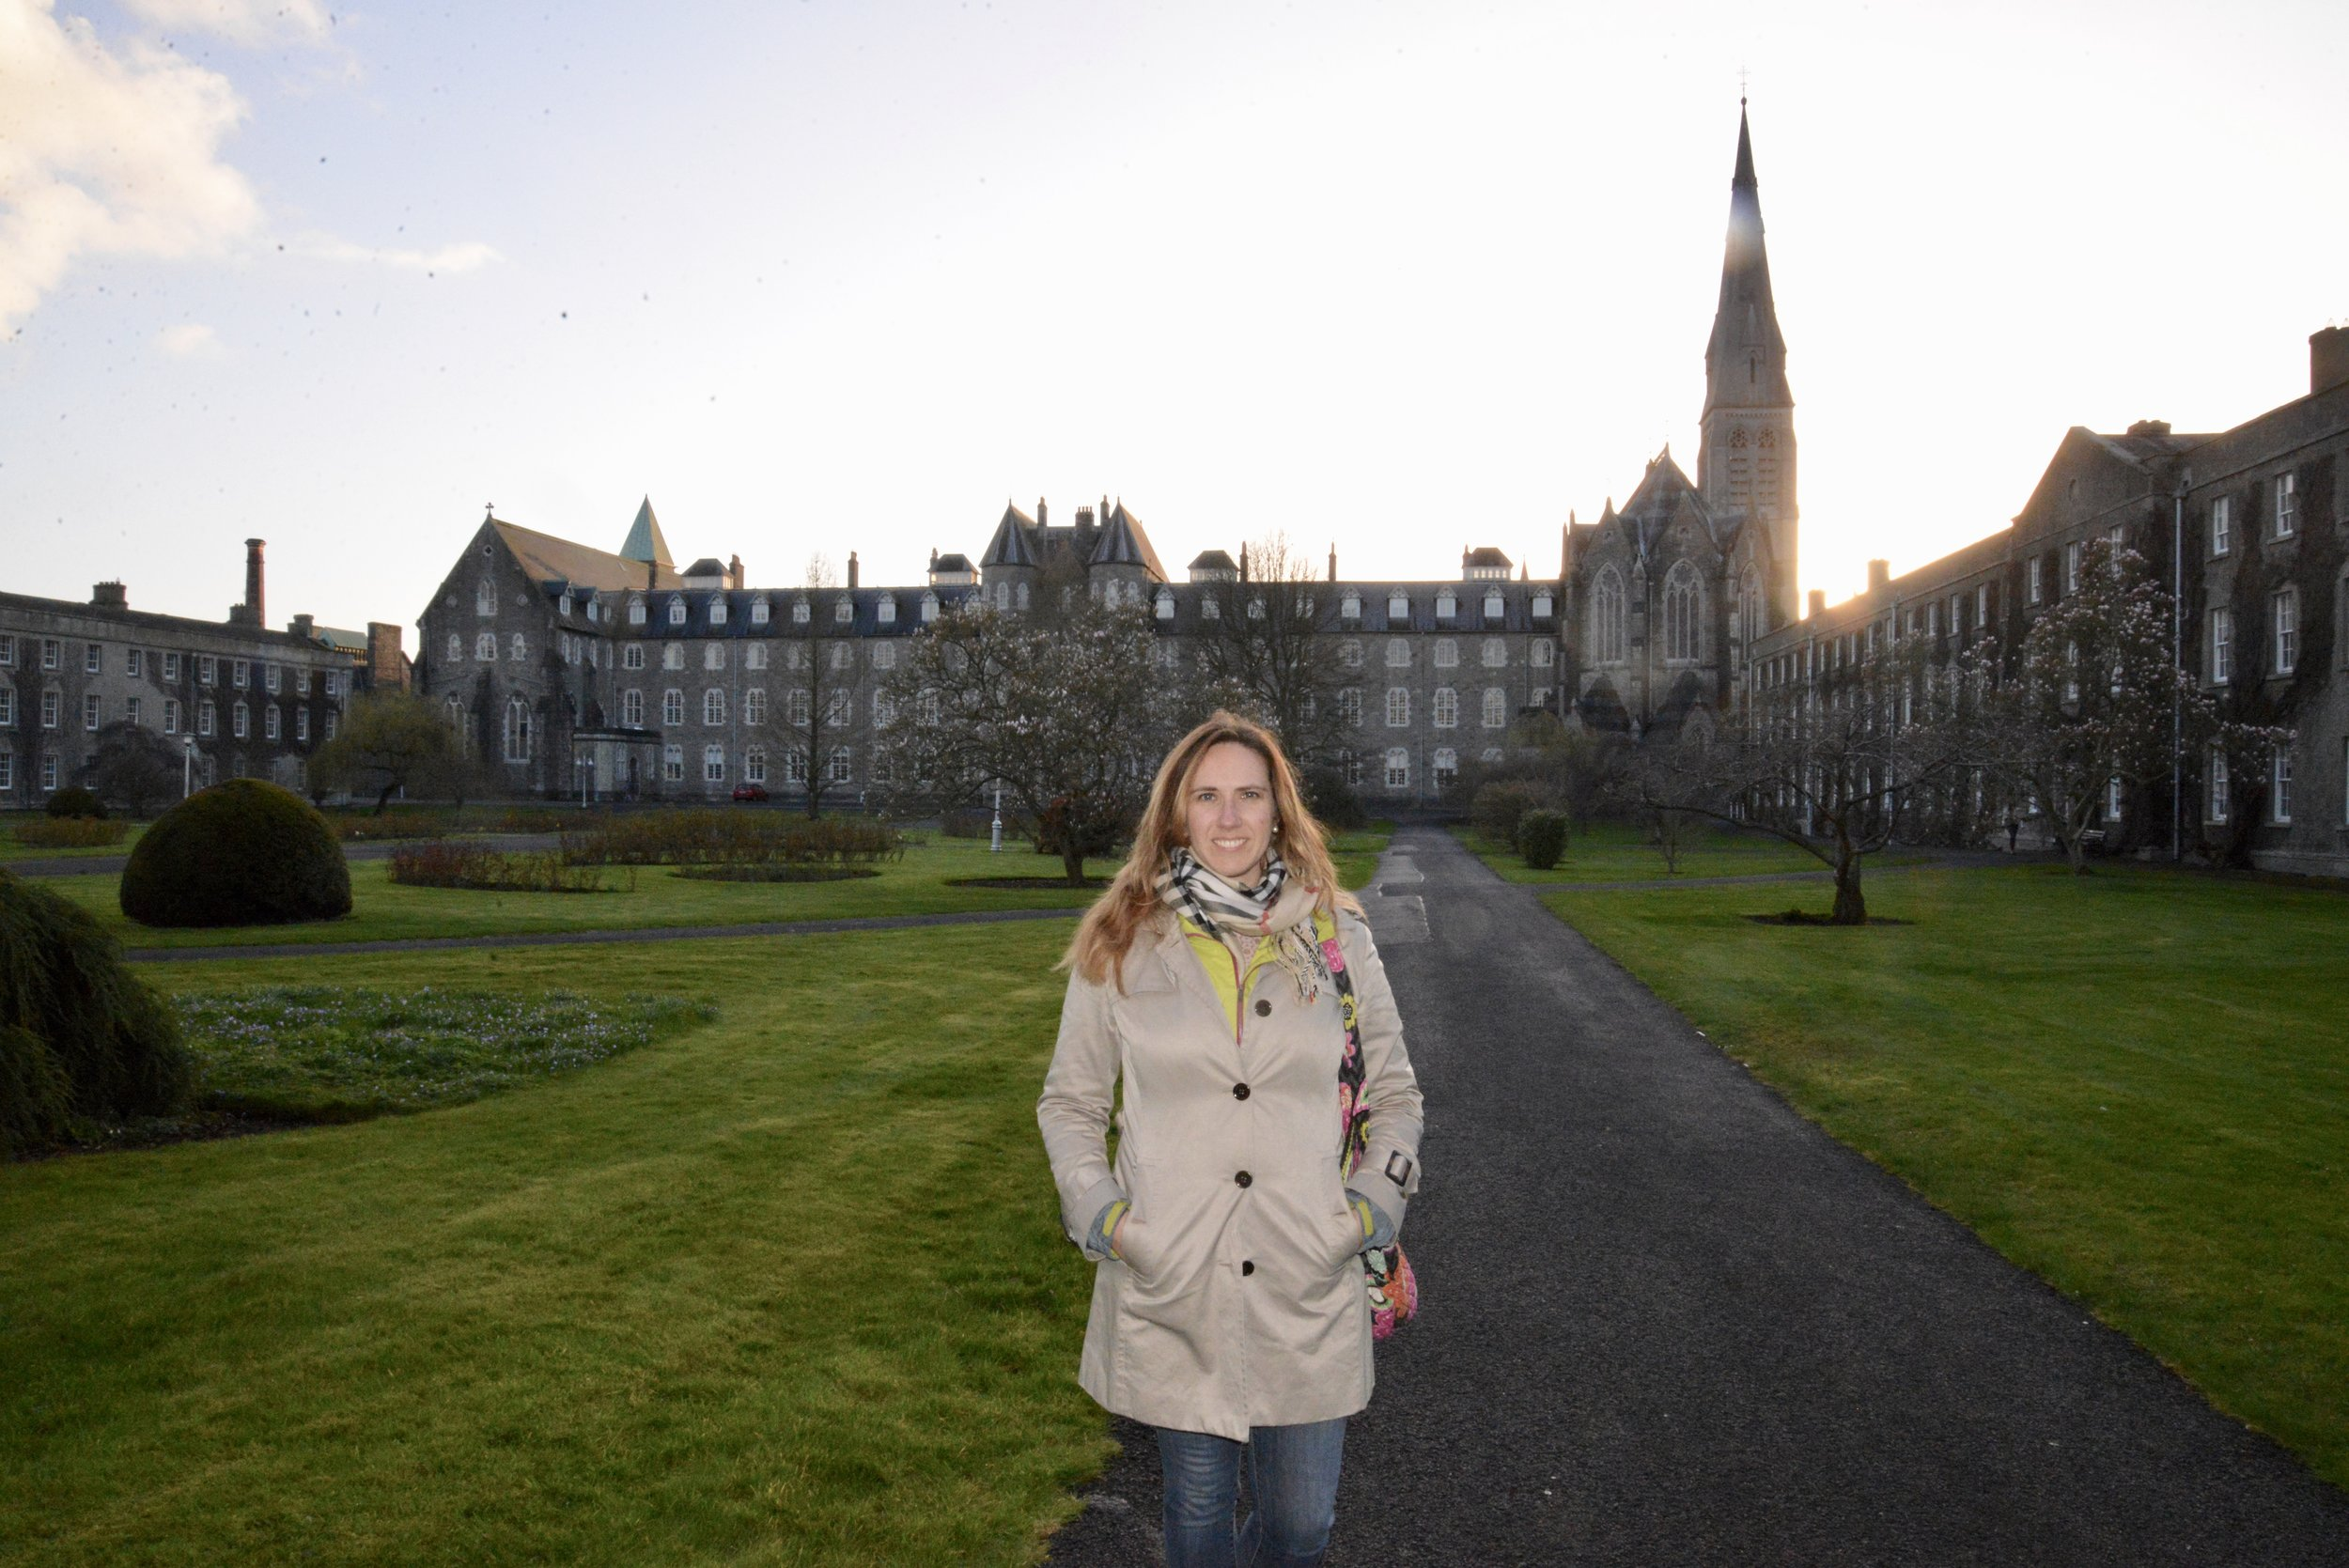 The older part of Maynooth University